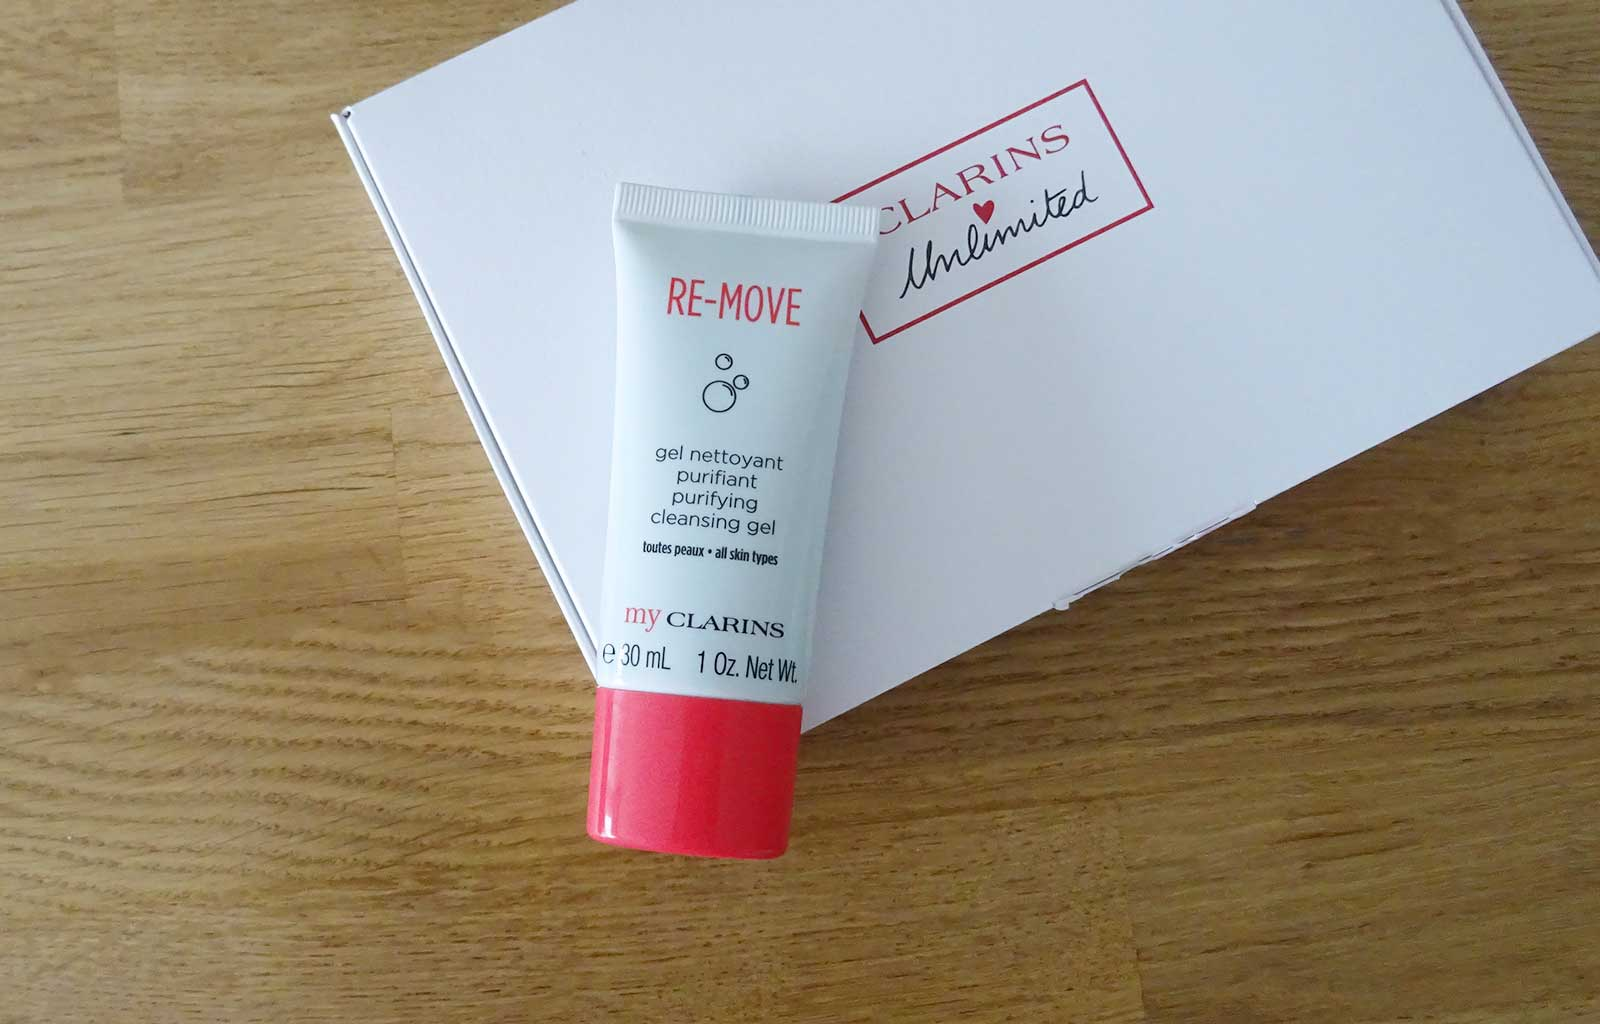 Clarins unlimited my clarins re-move gel nettoyant purifiant